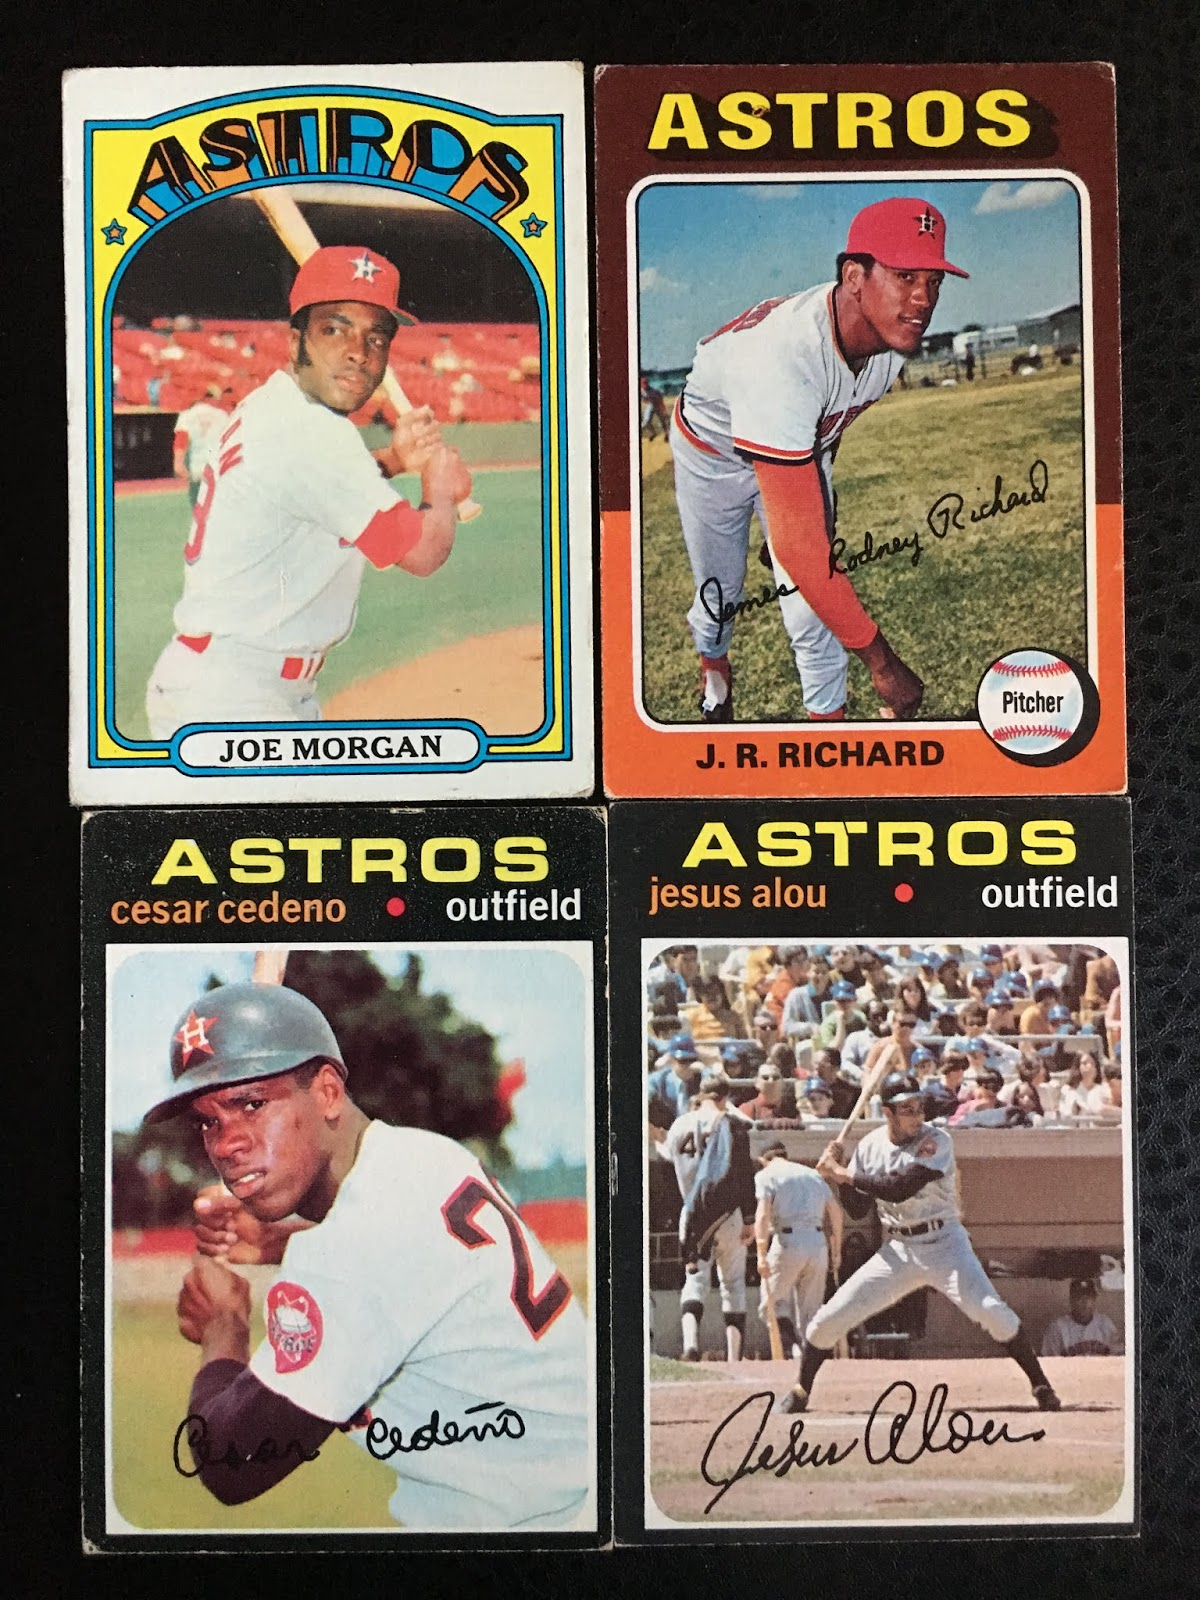 88e2aa0f13f The Astros has a plethora of great talent in the 70s ranging from Joe  Morgan and Cesar Cedeno (two future Reds) to young fireballer J.R. Richard.